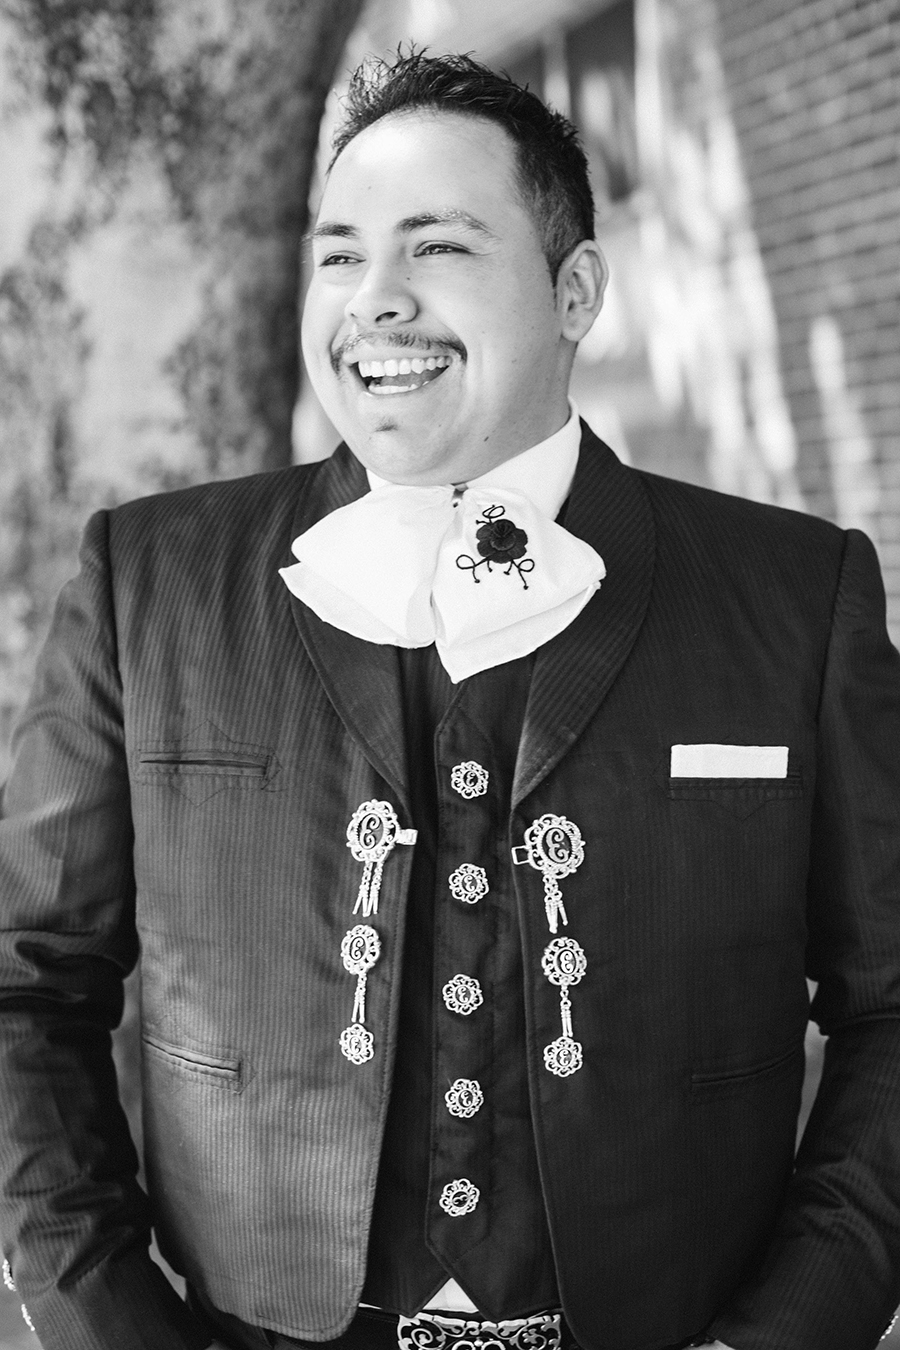 mexican-charro-wedding-crestmoremanor-riverside-losangeles-by-gabrielagandara-15